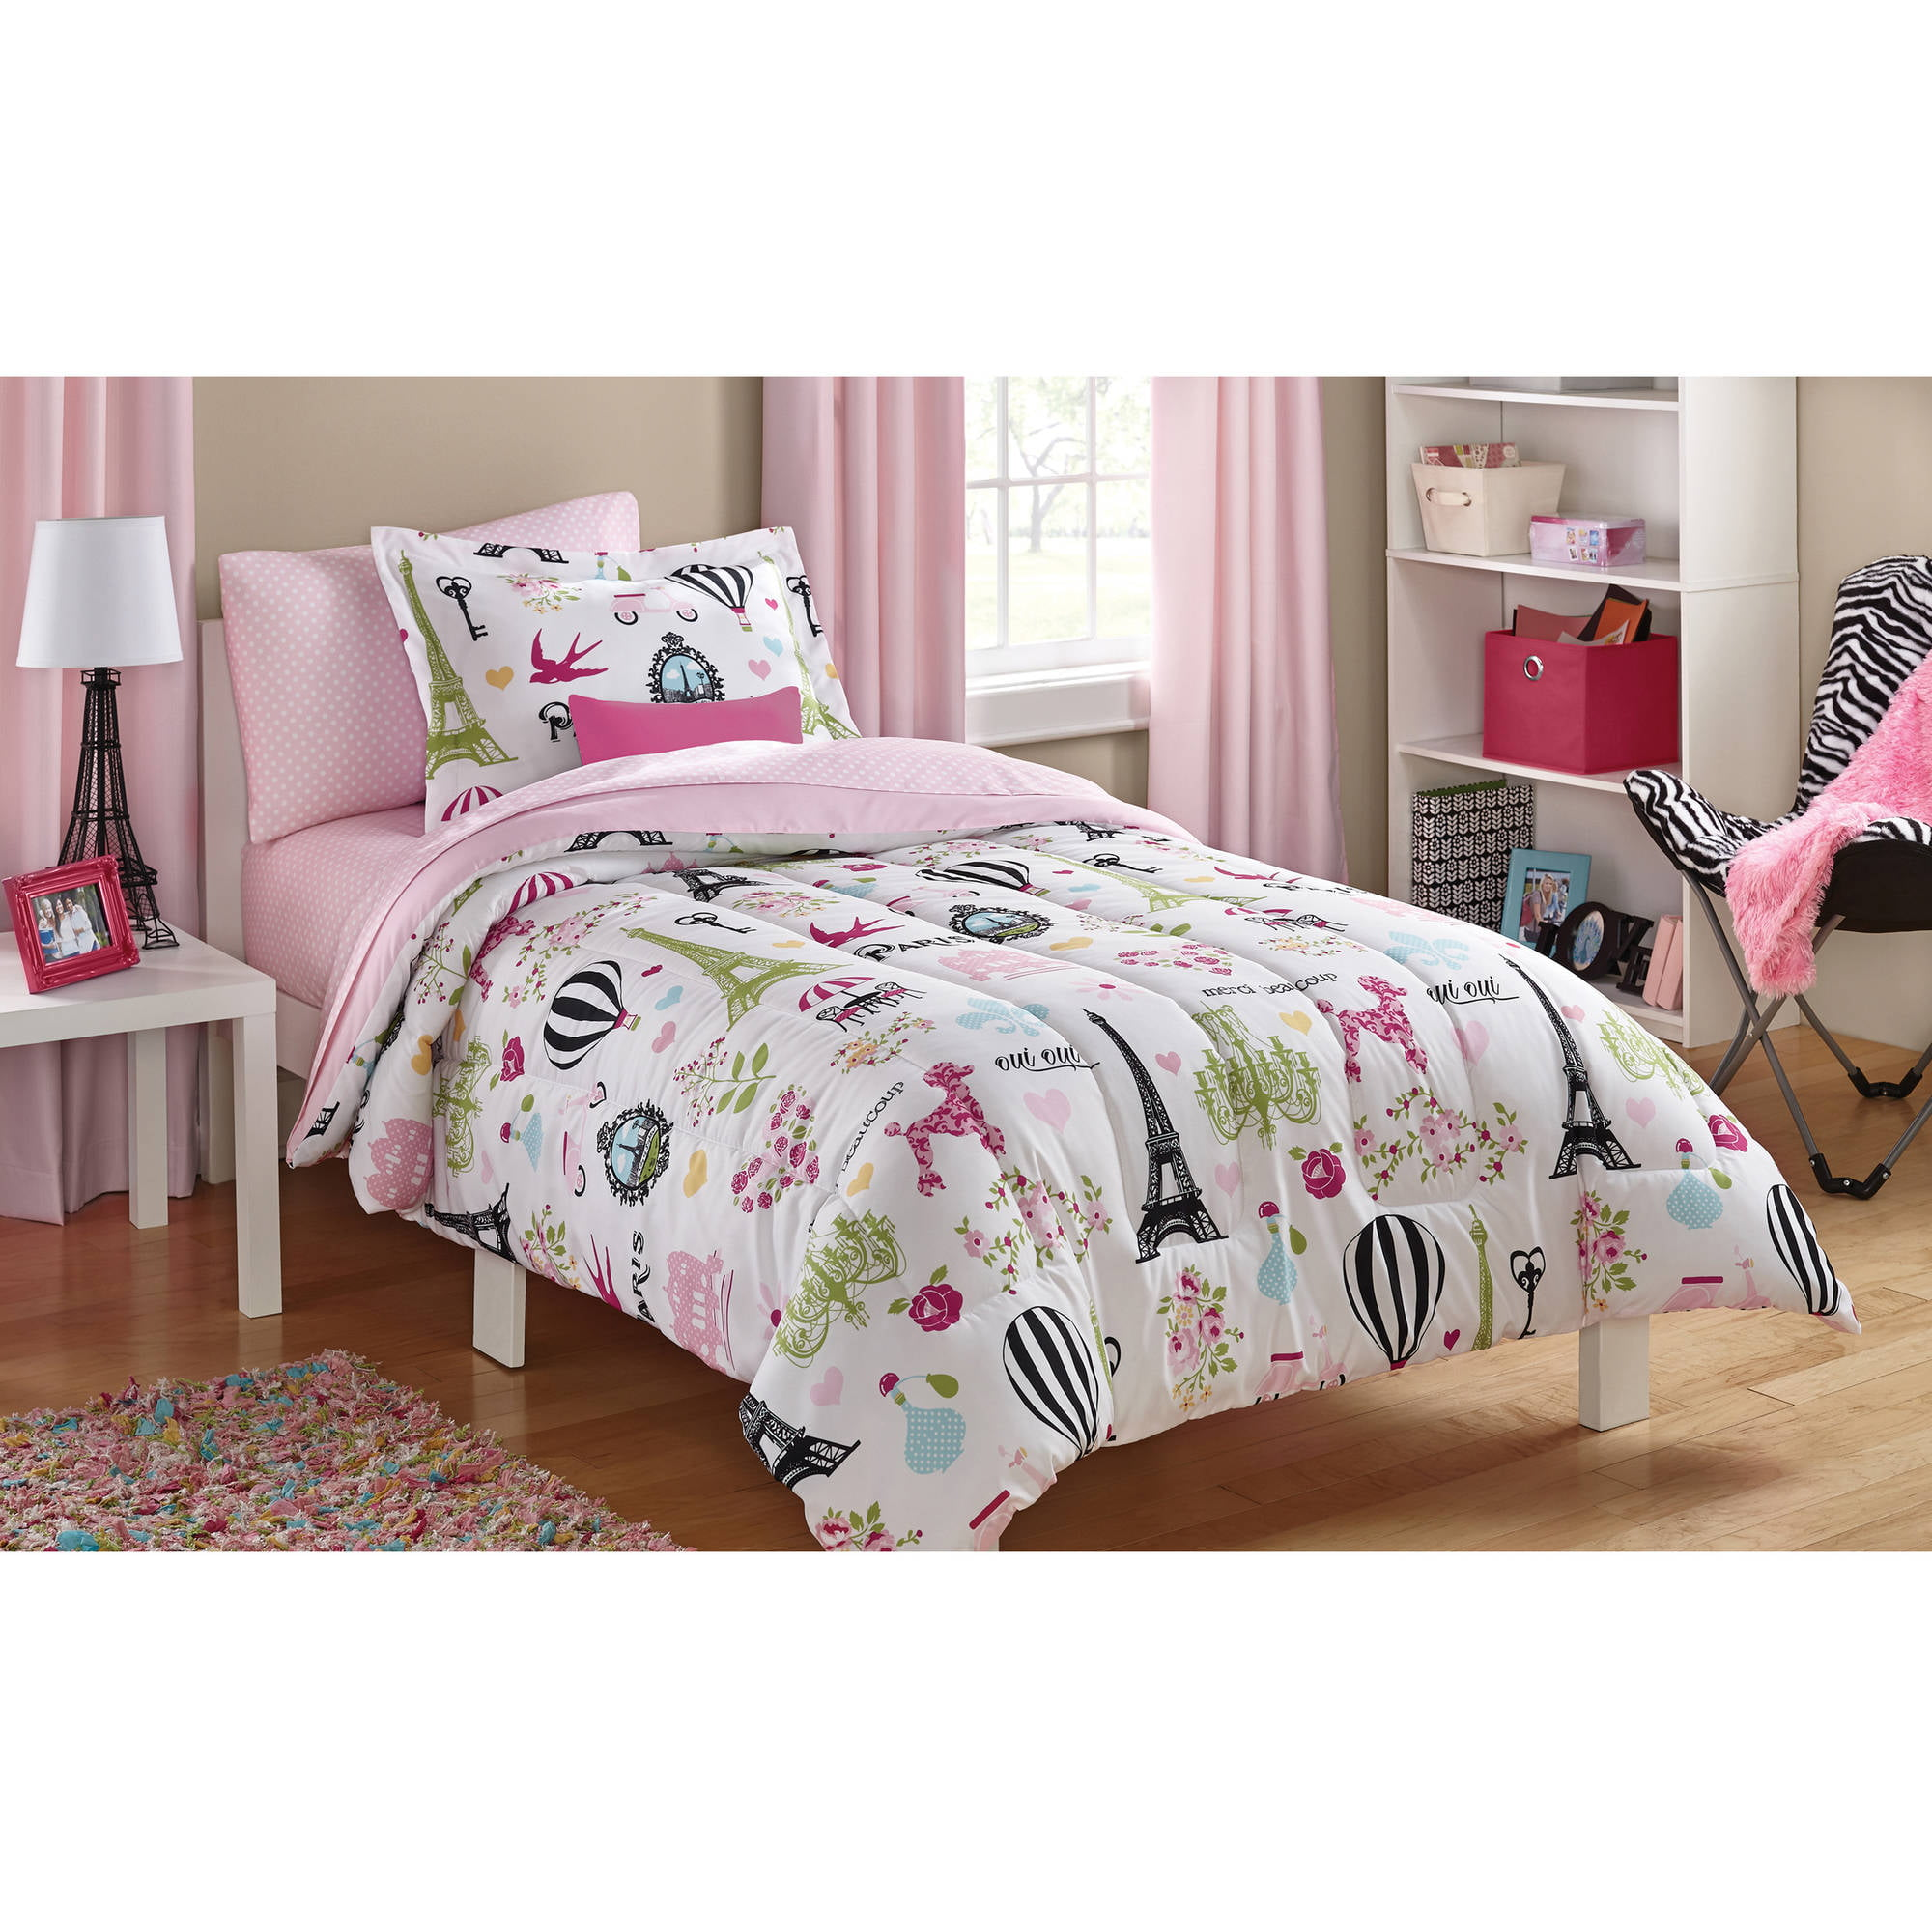 Bedding sets for teenage girls walmart - Bedding Sets For Teenage Girls Walmart 11